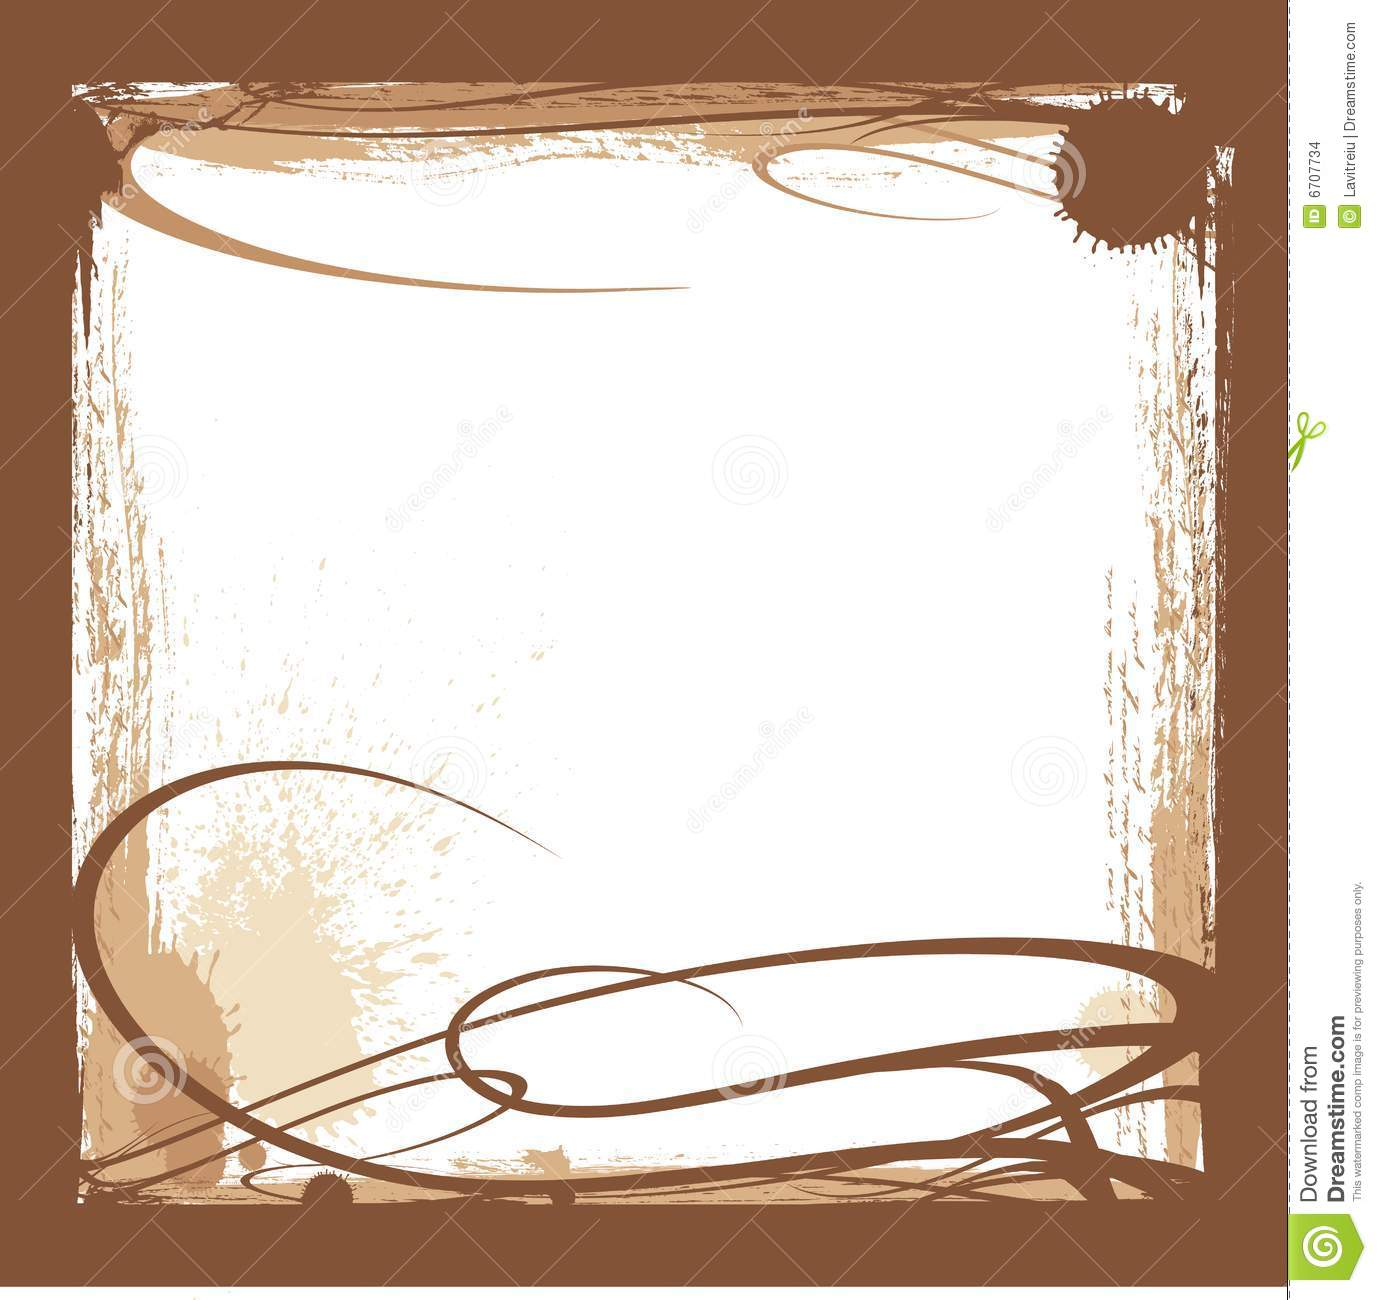 Brown Ink Border Stock Images - Image: 6707734